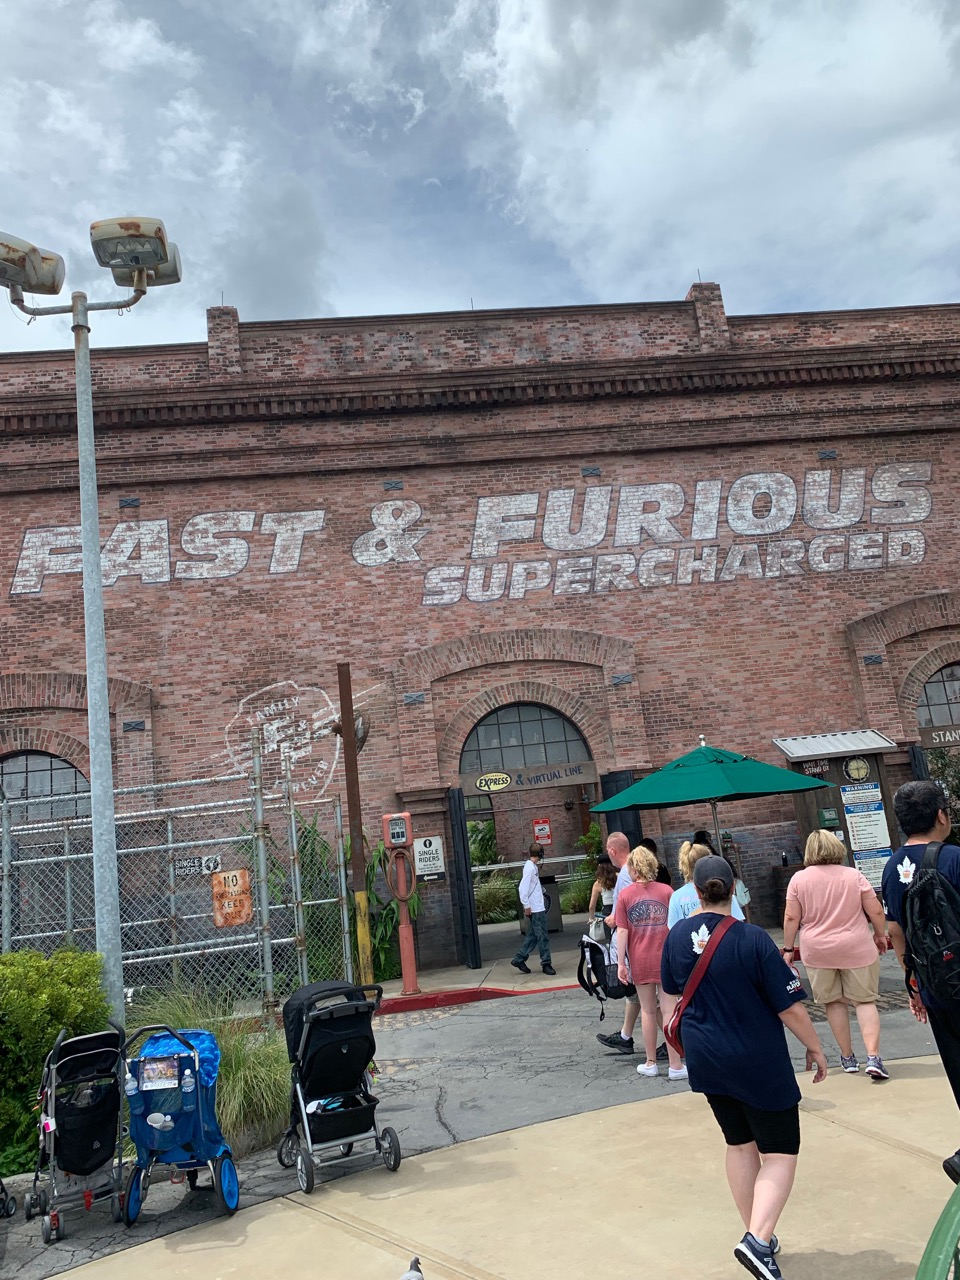 universal studios florida rides guide best rides fast and furious.jpeg